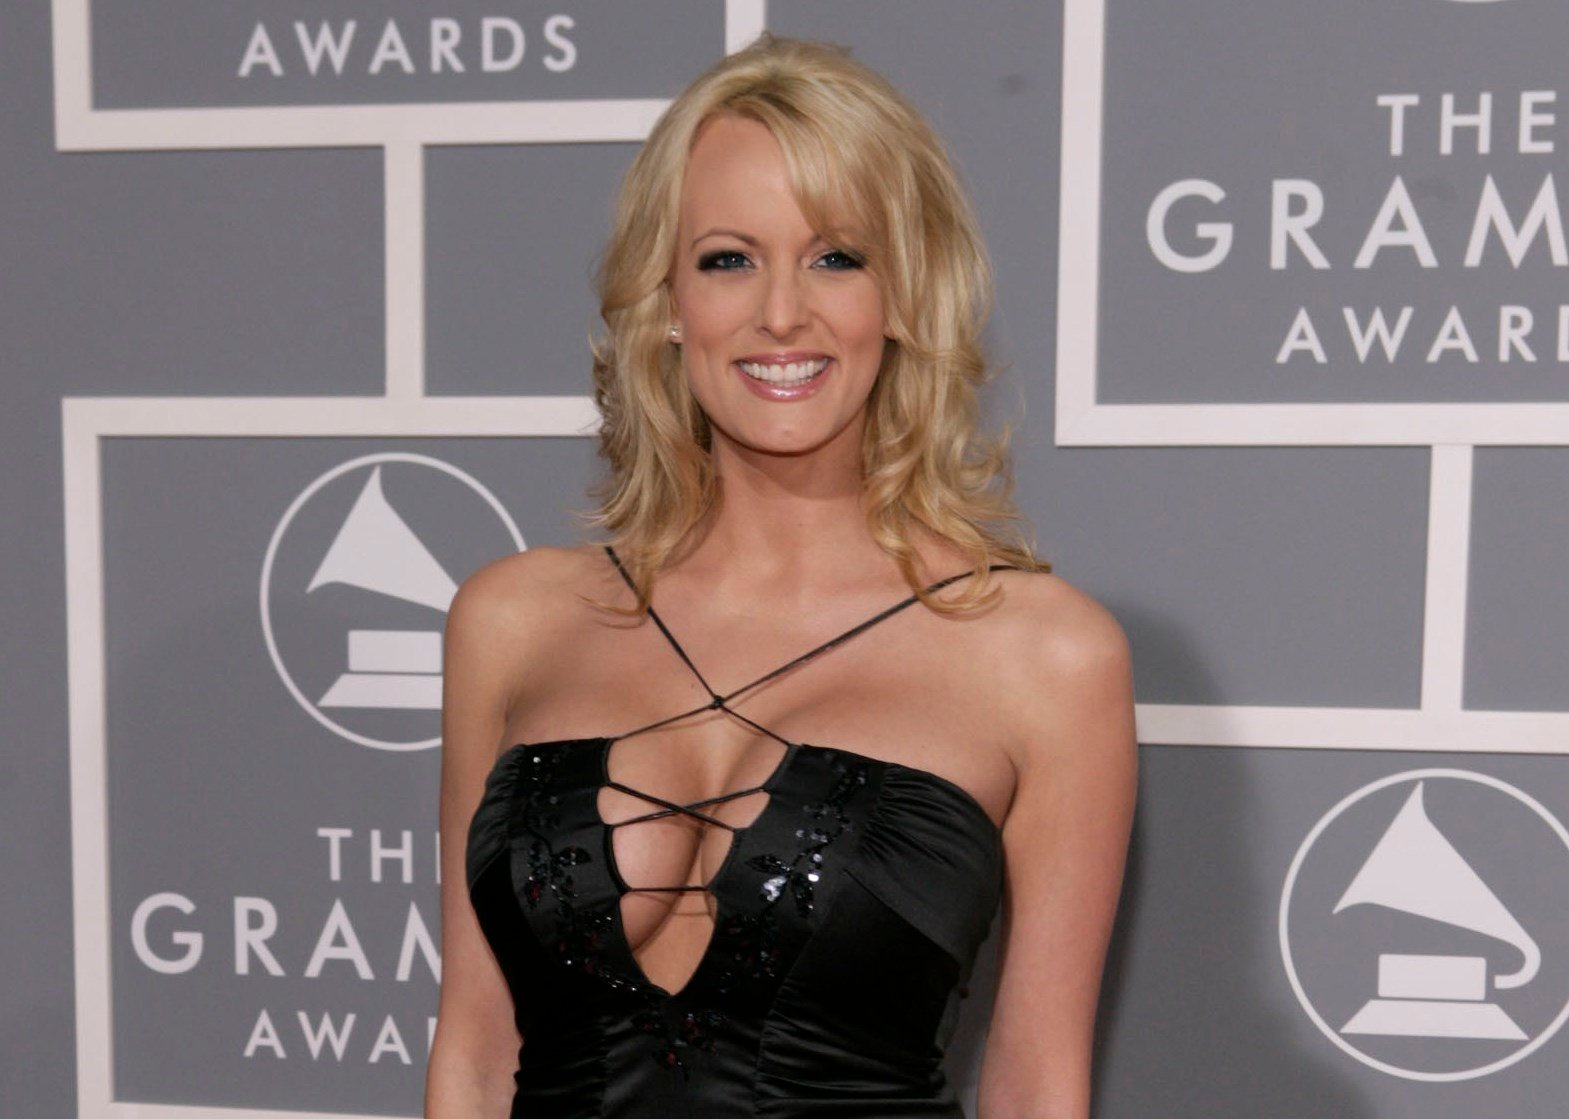 Trump lawyer seeks $20 million damages from Stormy Daniels